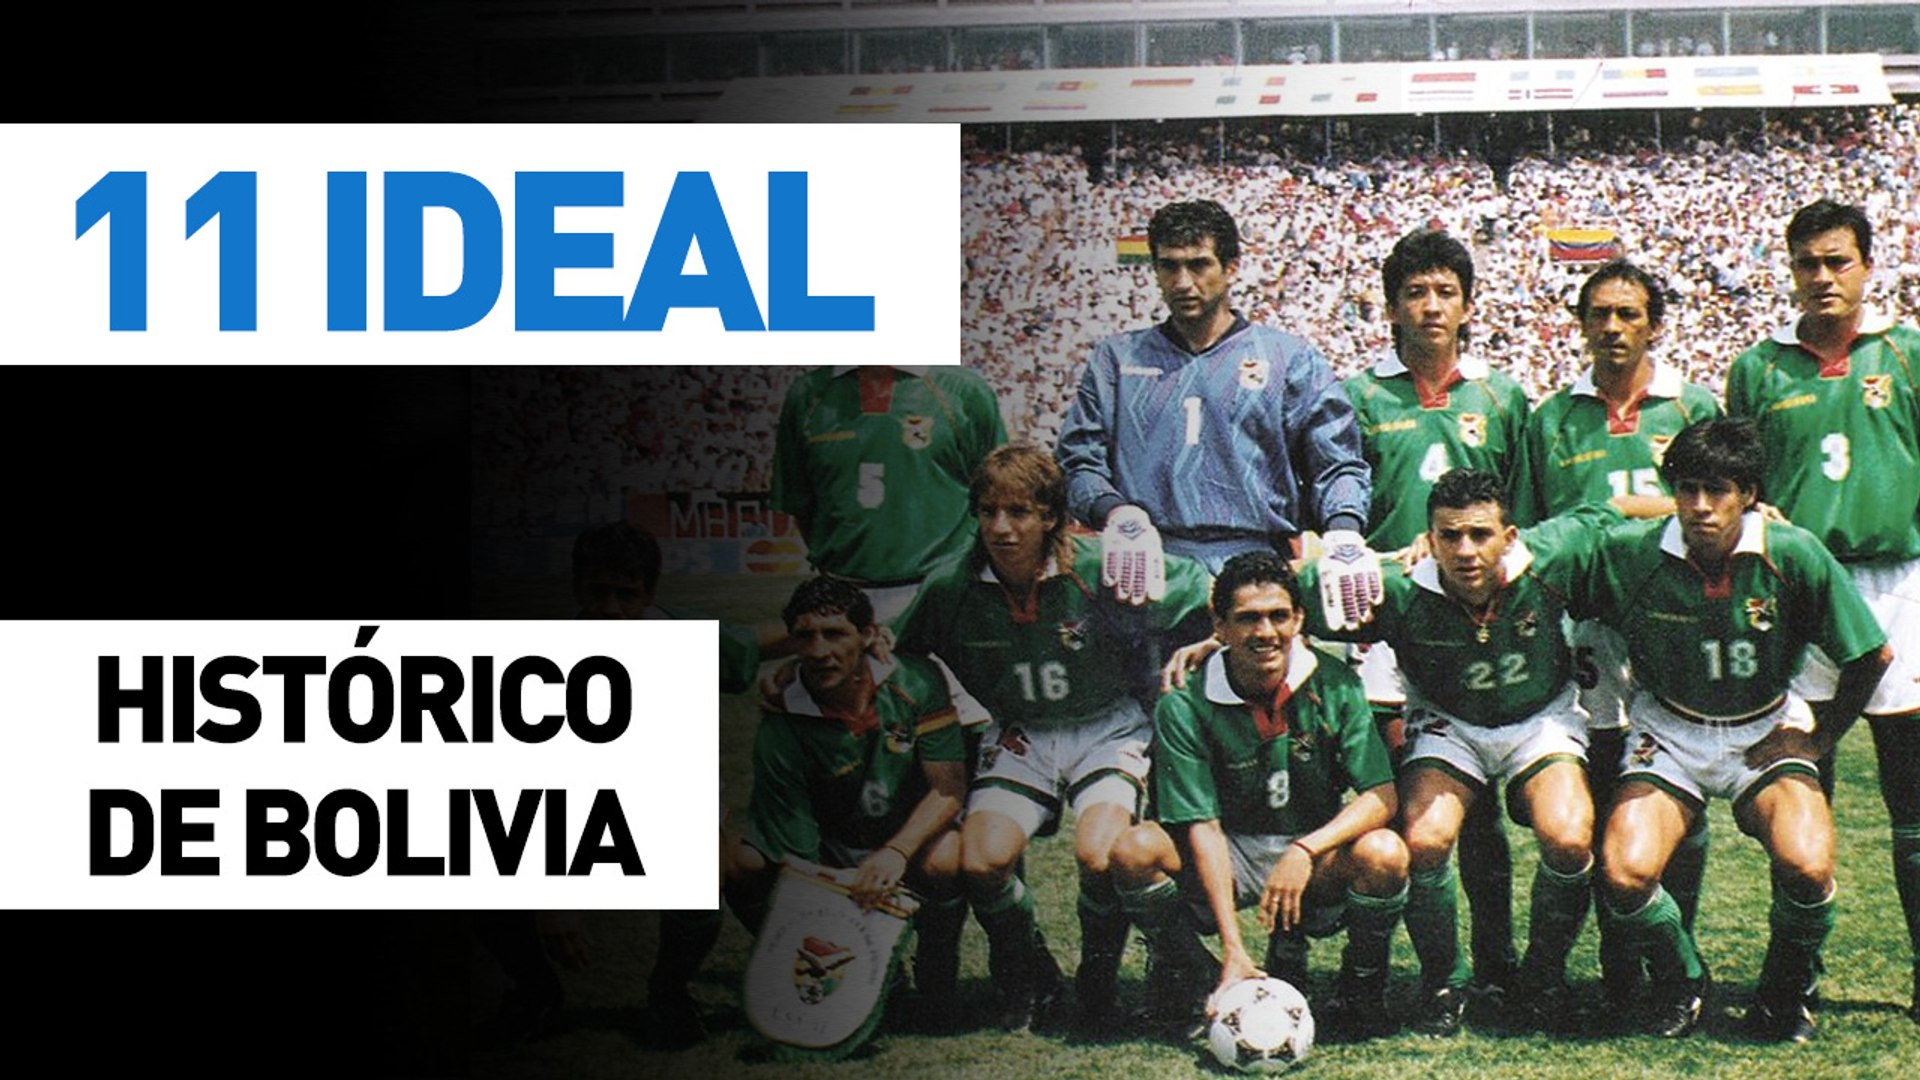 11 Ideal | (histórico de) Bolivia